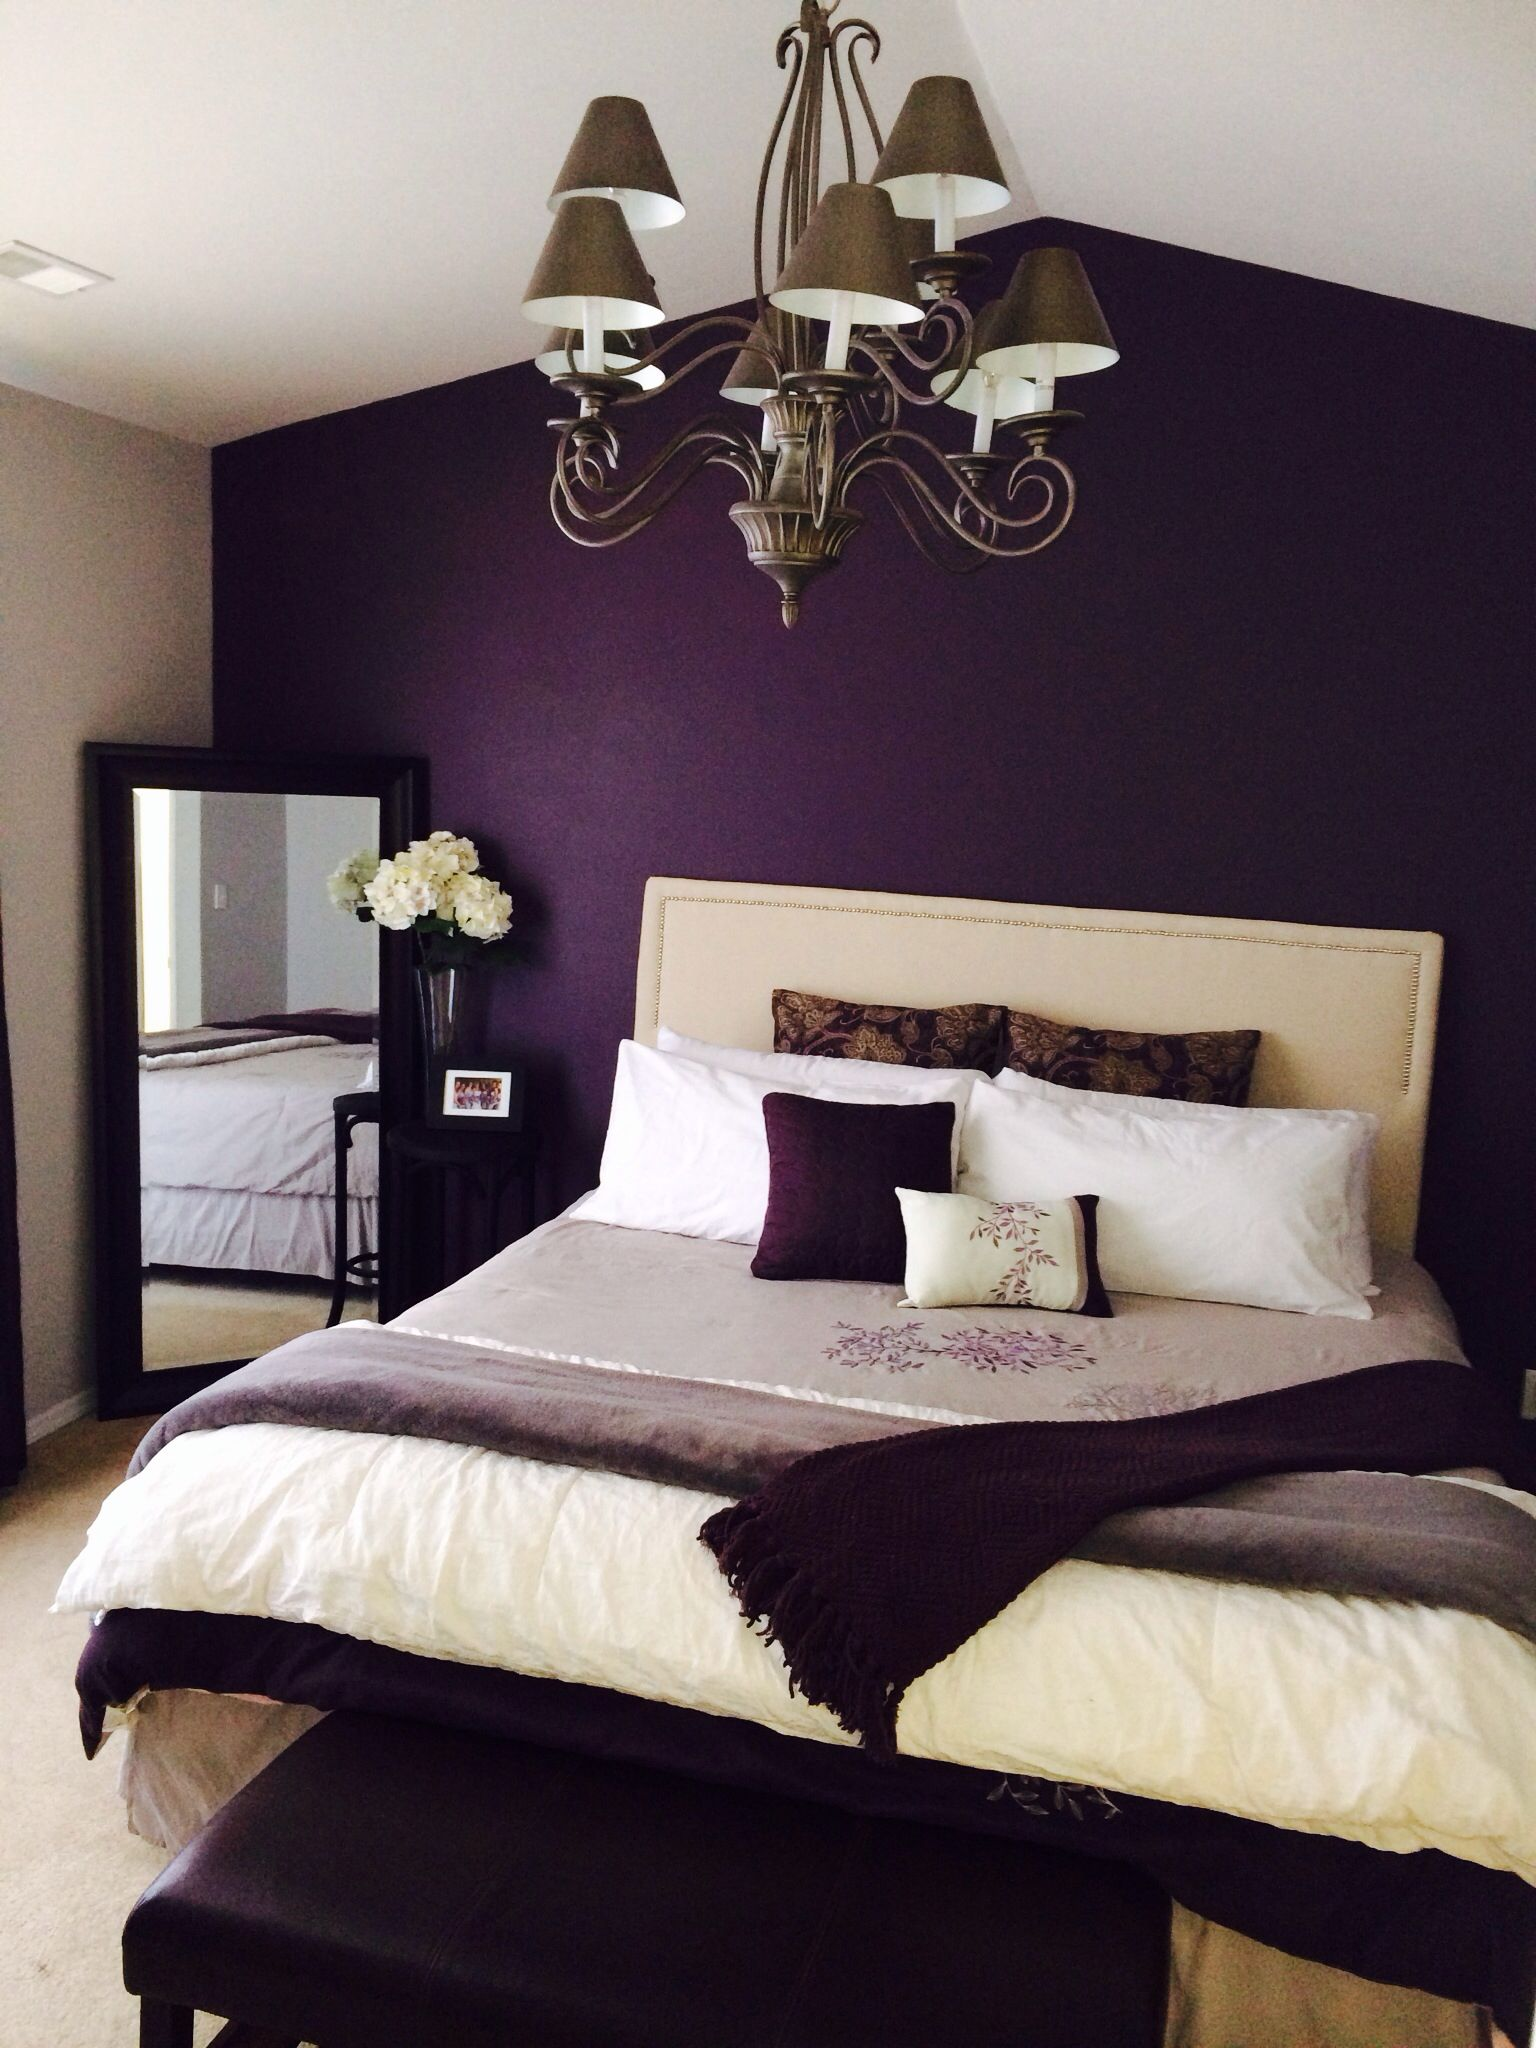 purple bedroom feature wall click to see a larger image 30 bedroom ideas to make the happen 440